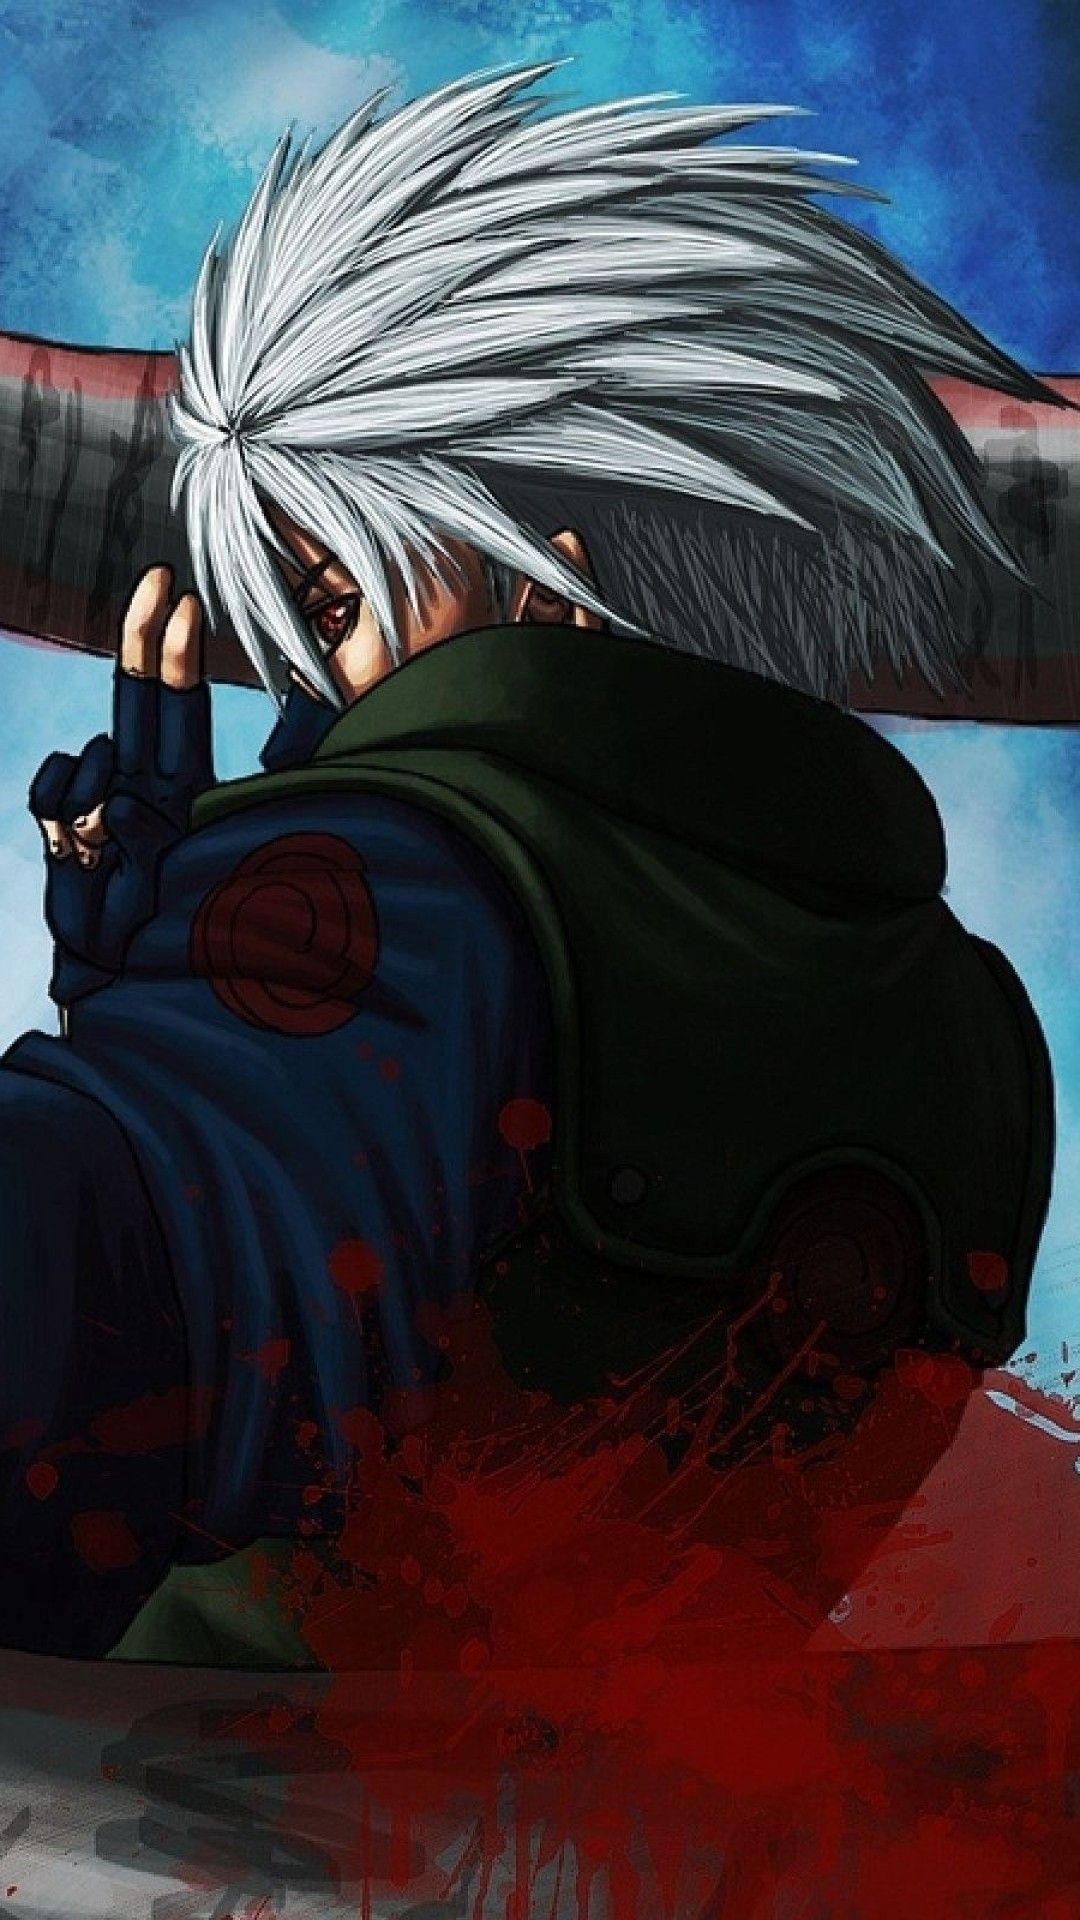 Wallpaper Phone Kakashi Full Hd Com Imagens Personagens De